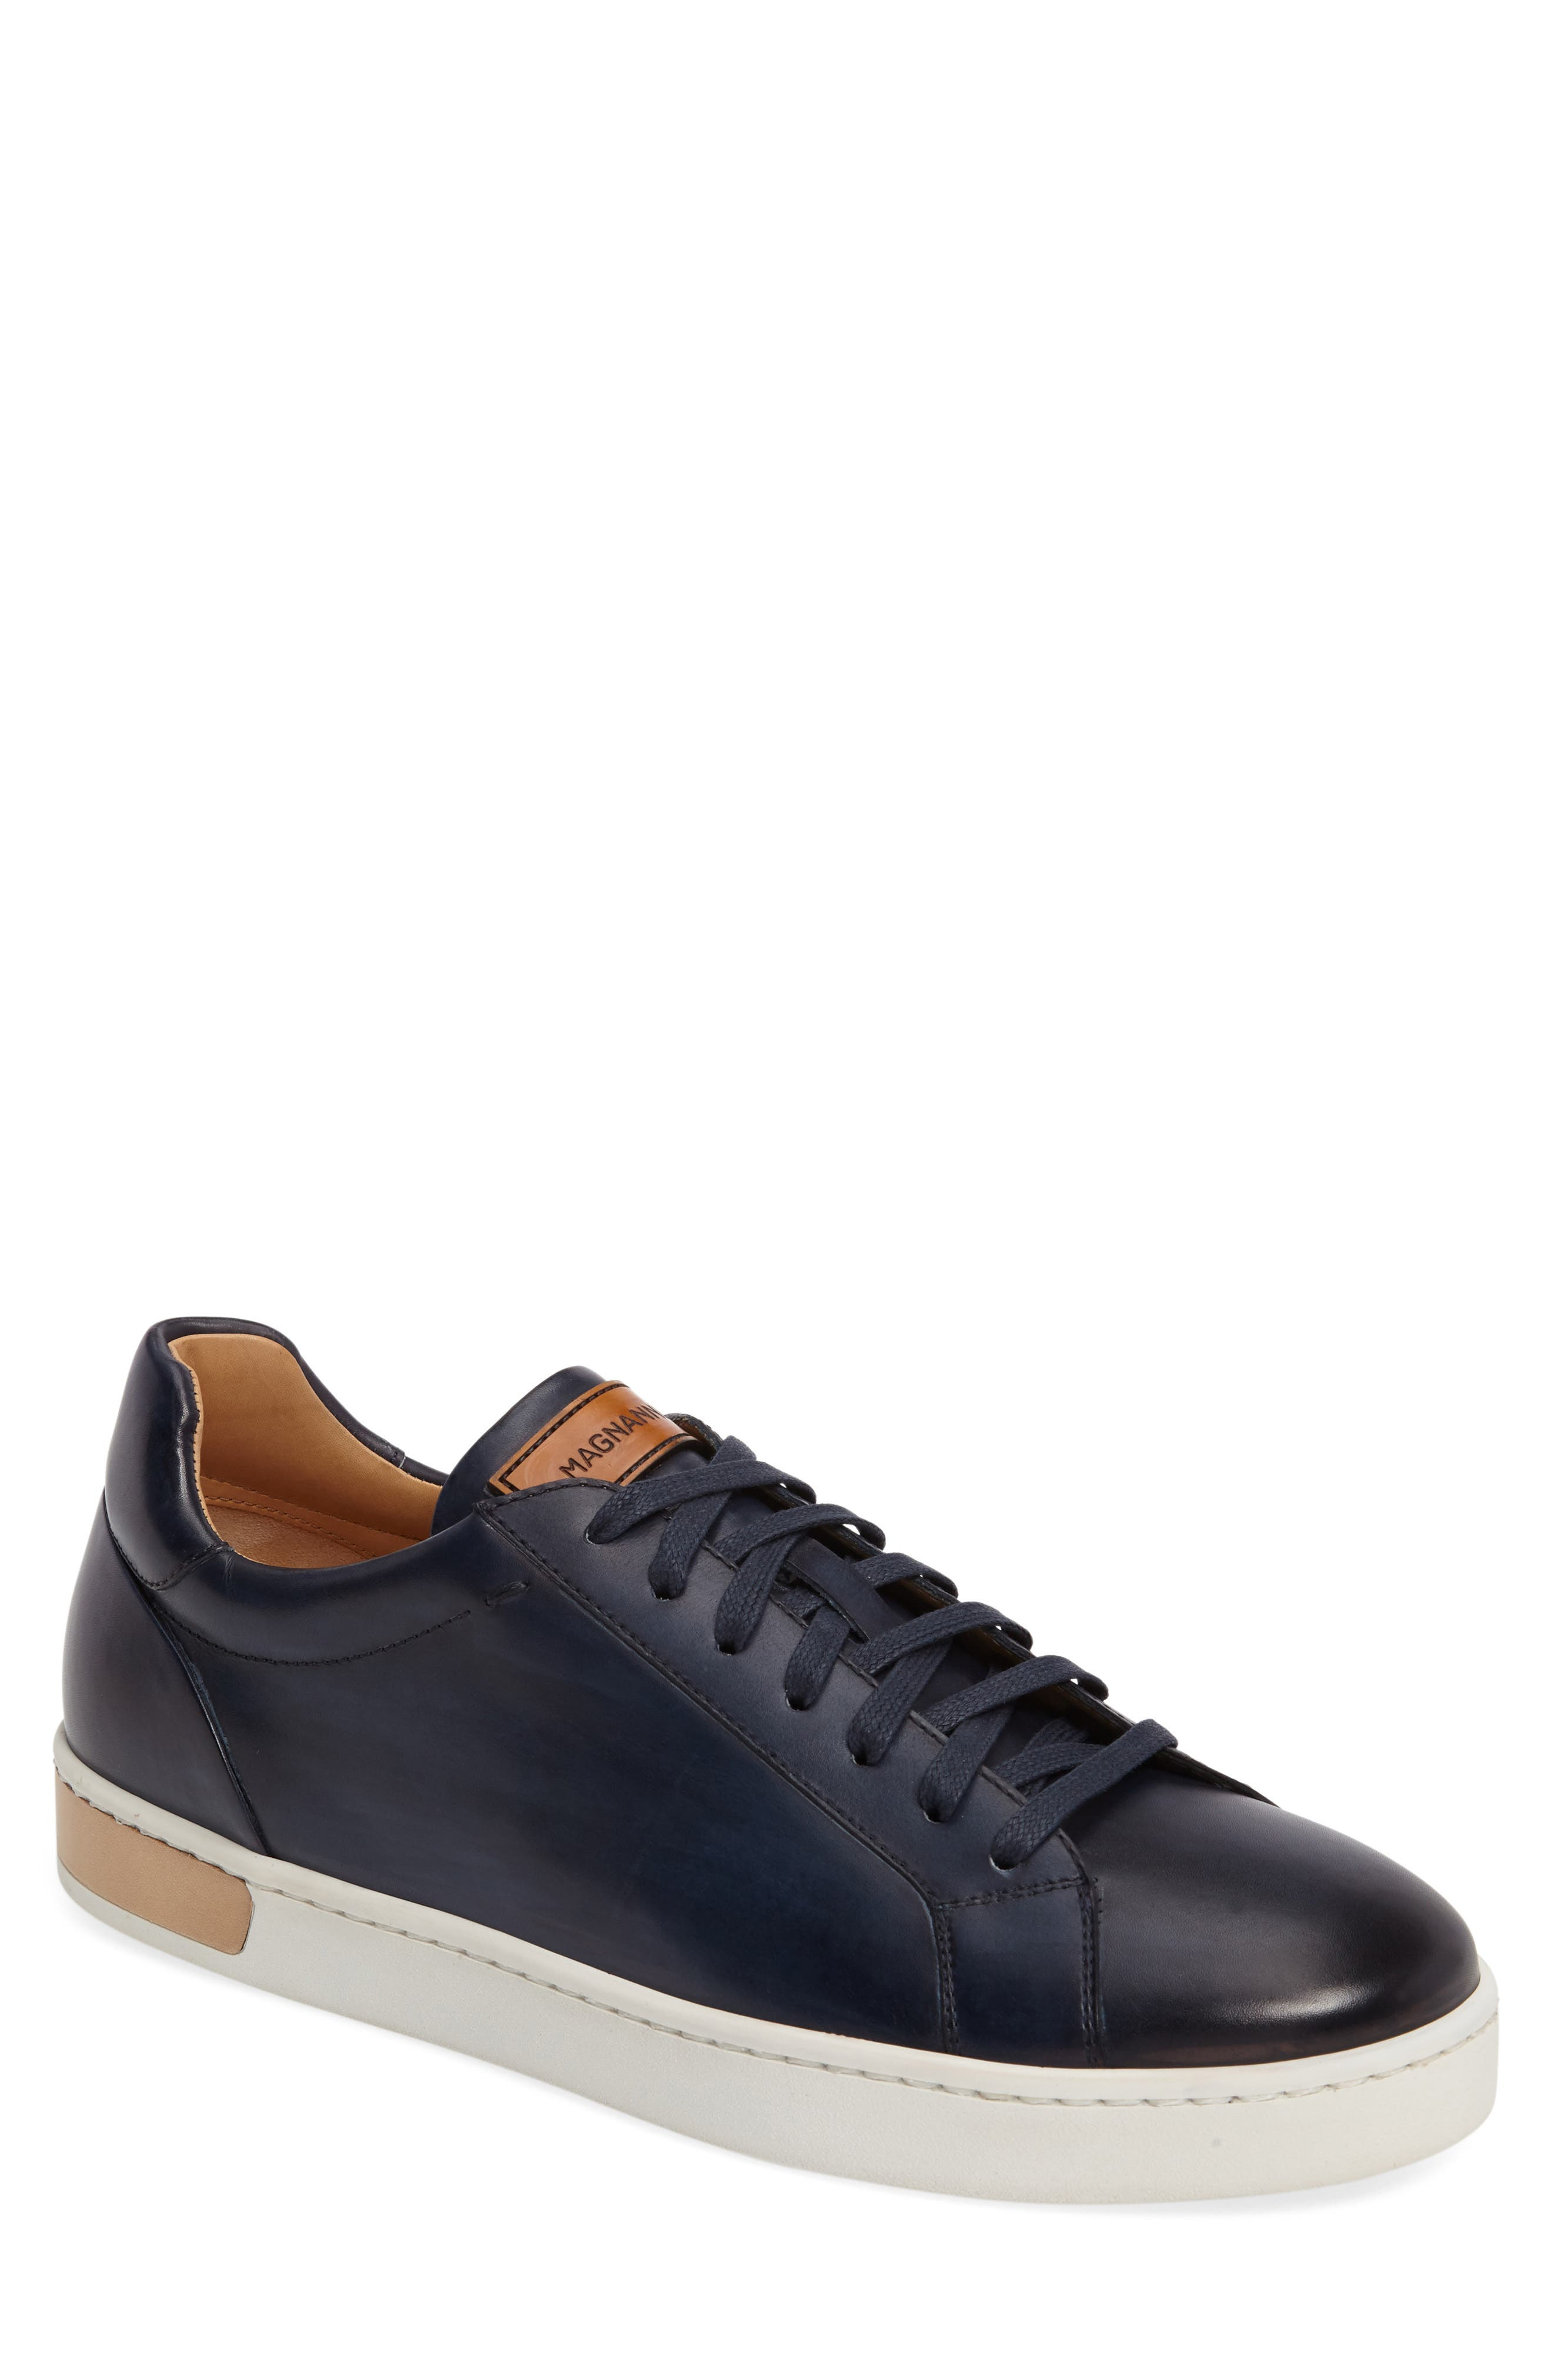 Caballero Sneaker,                             Main thumbnail 1, color,                             Blue Leather